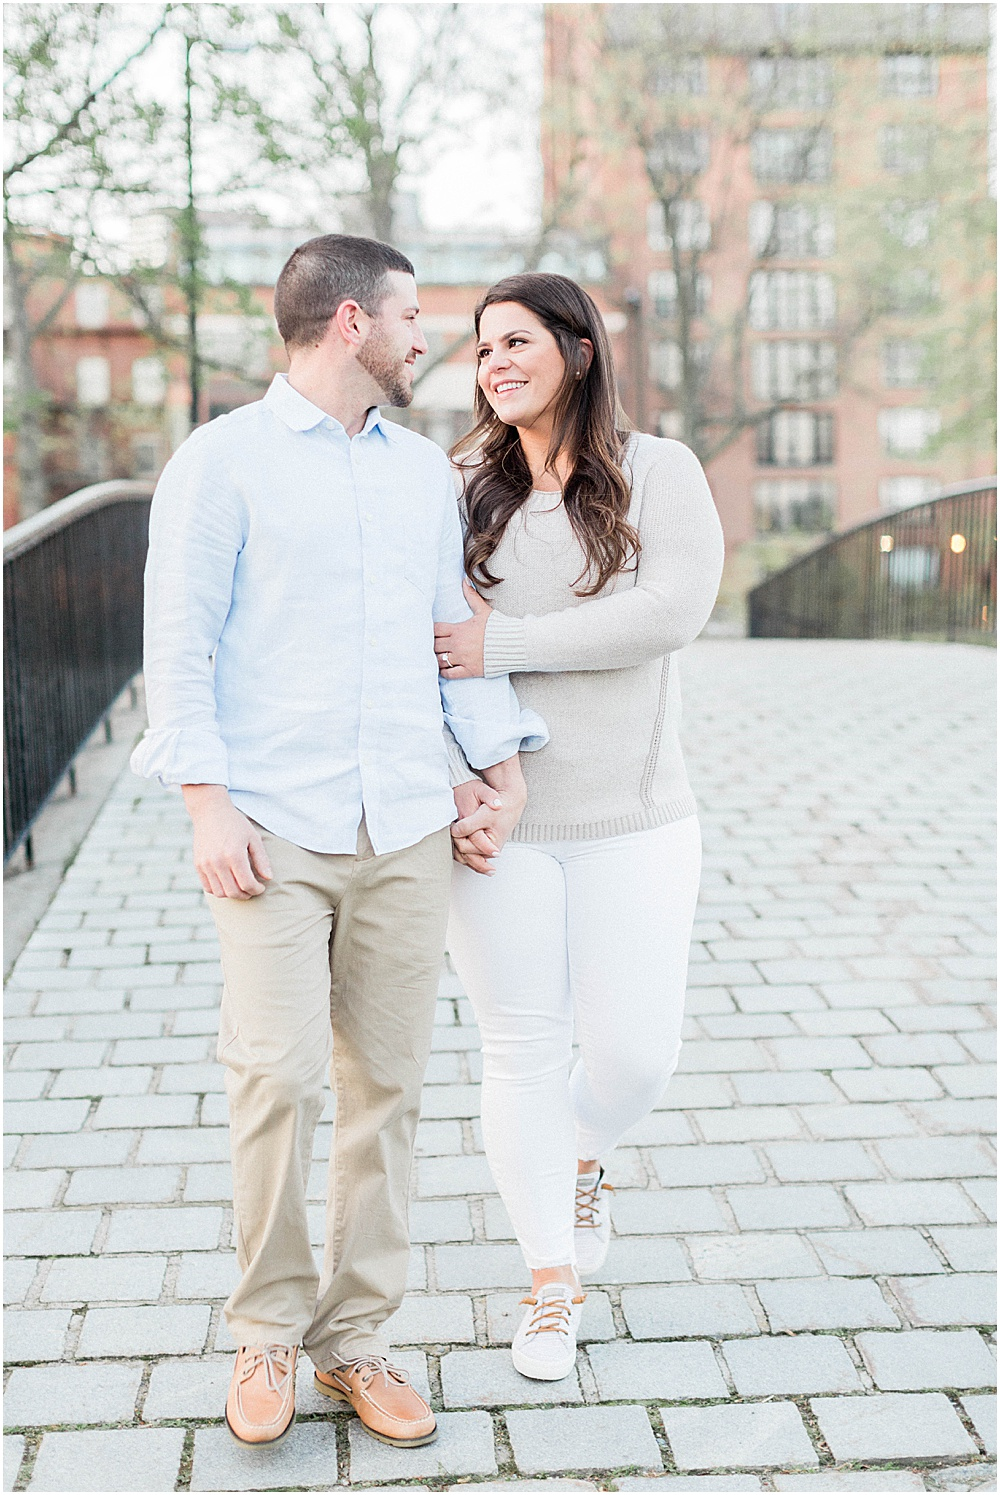 boston_charles_river_esplanaude_back_bay_cherry_blossoms_spring_engagement_session_boston_charles_river_wedding_photographer_meredith_jane_photography_photo_0200.jpg